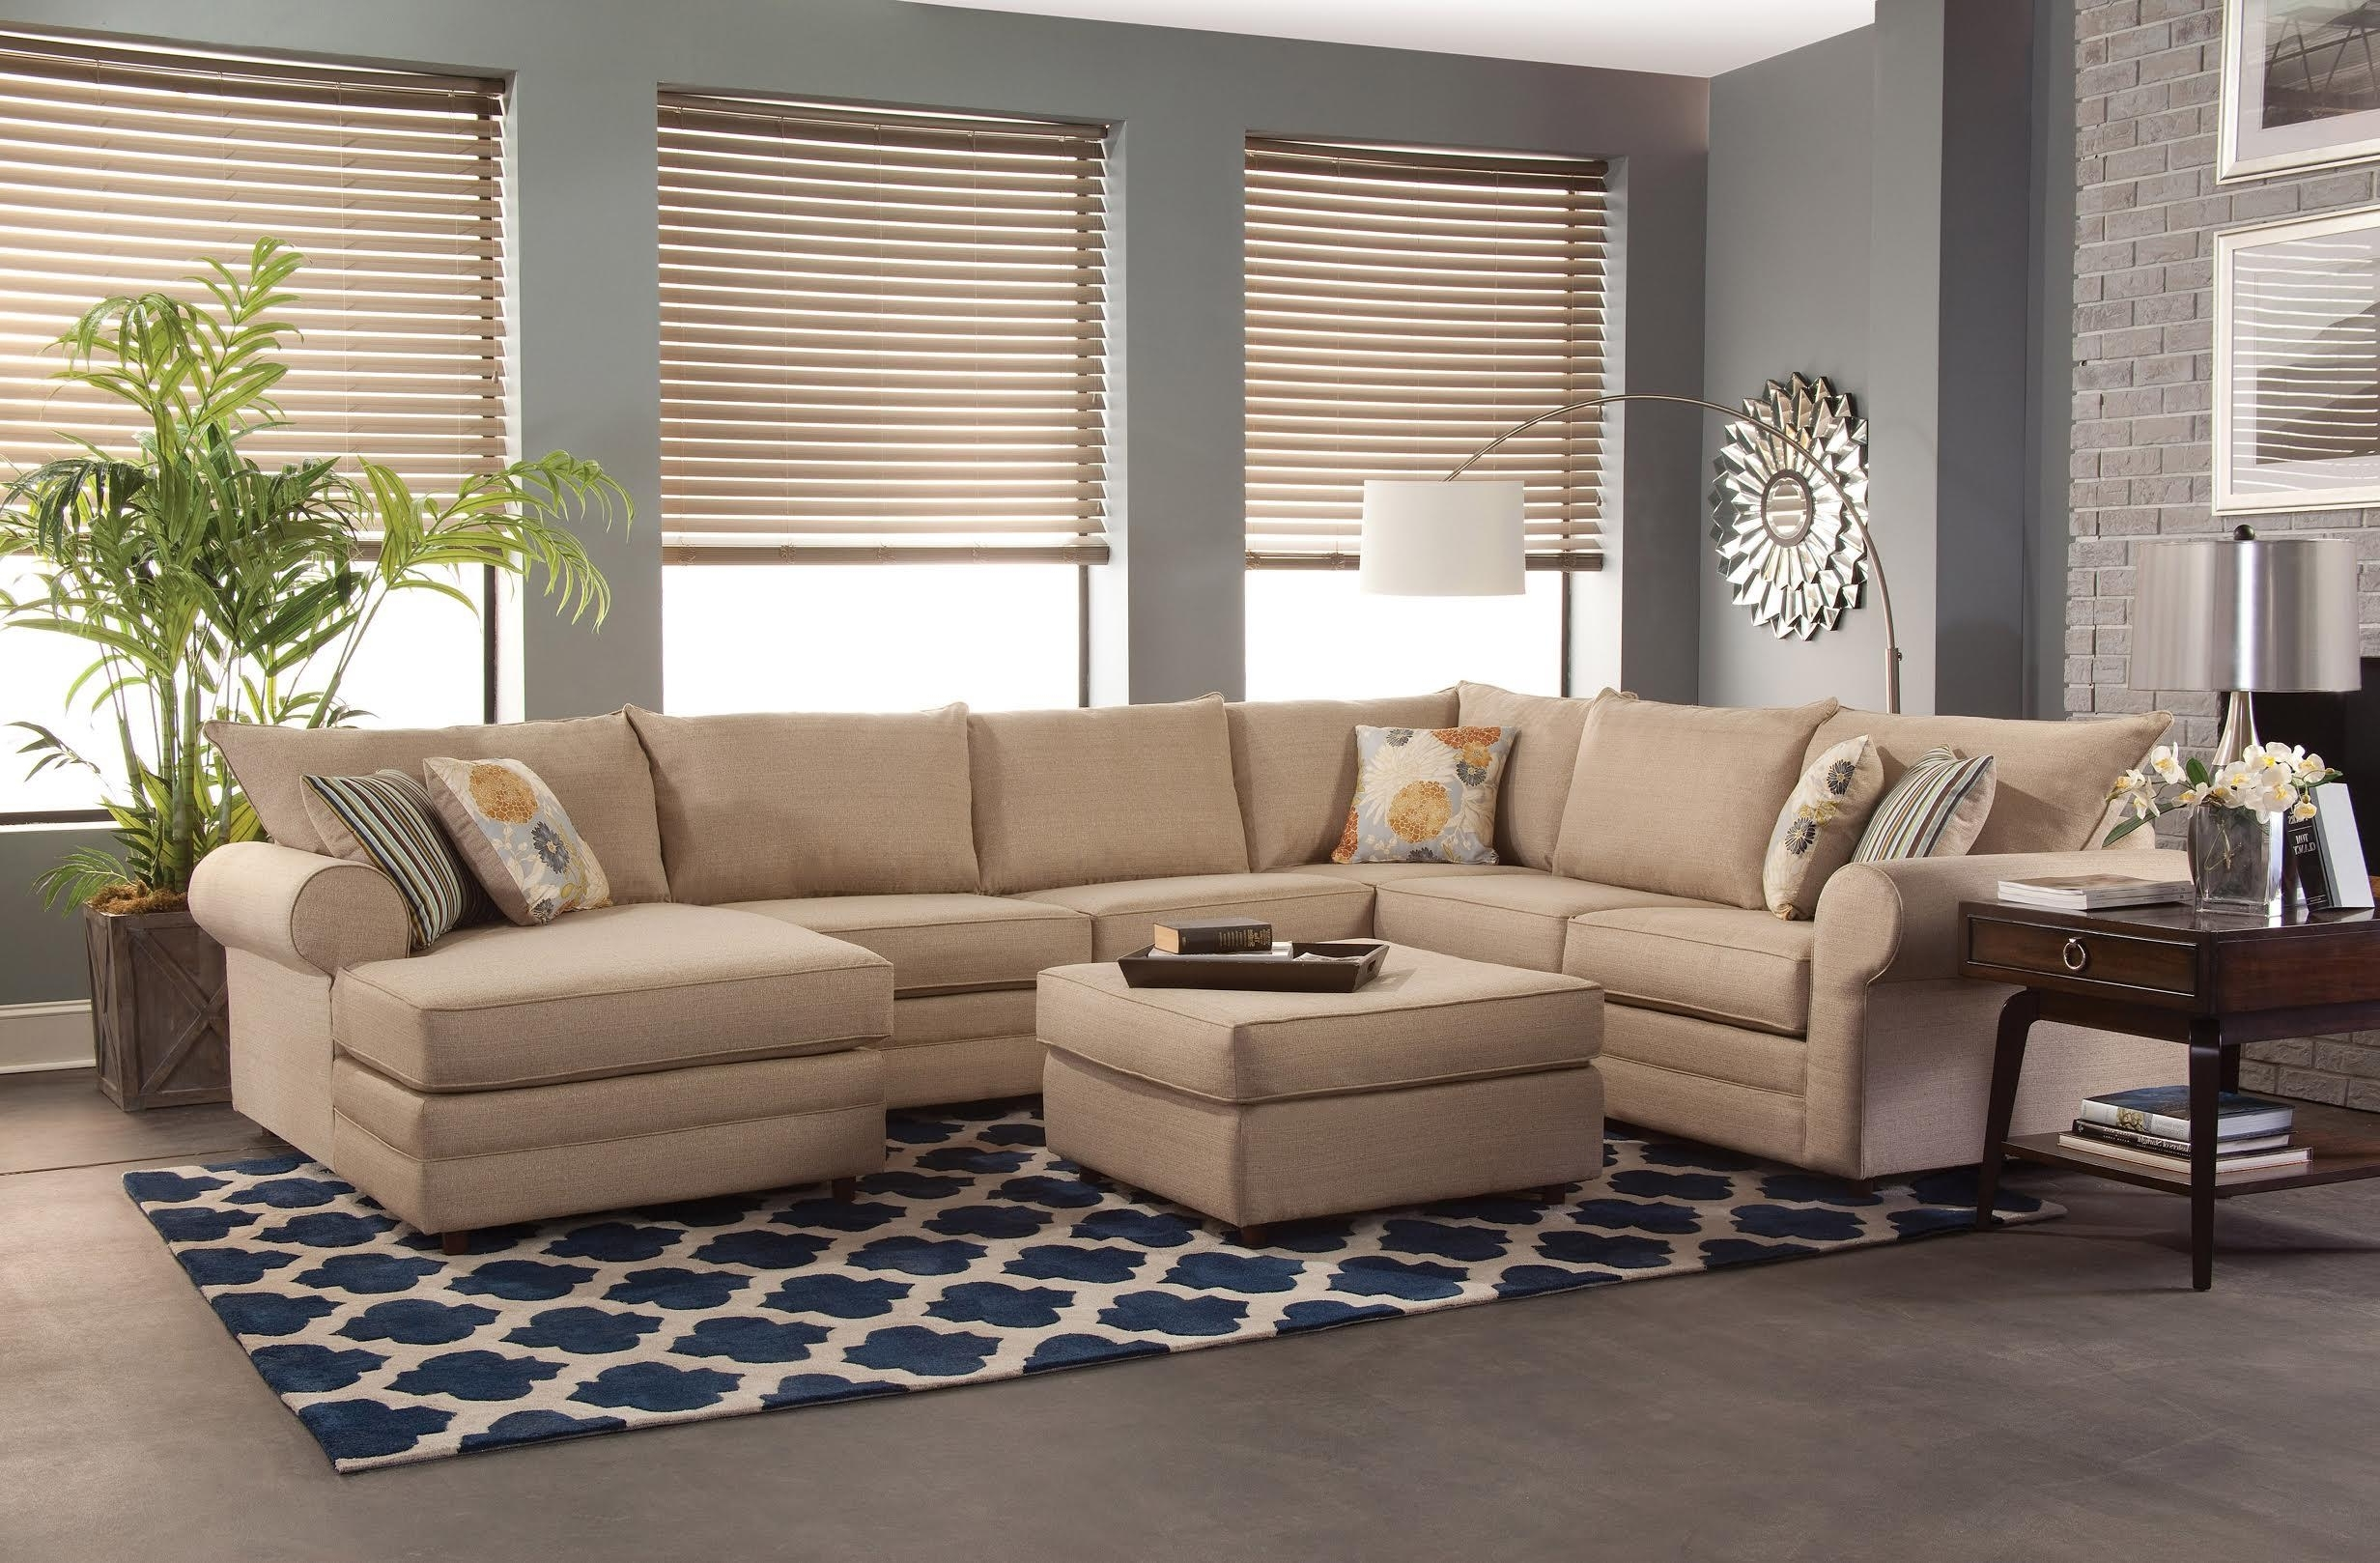 Well Known Maryland Sofas Throughout Belfort Essentials Monticello Casual Sectional Sofa (View 16 of 20)